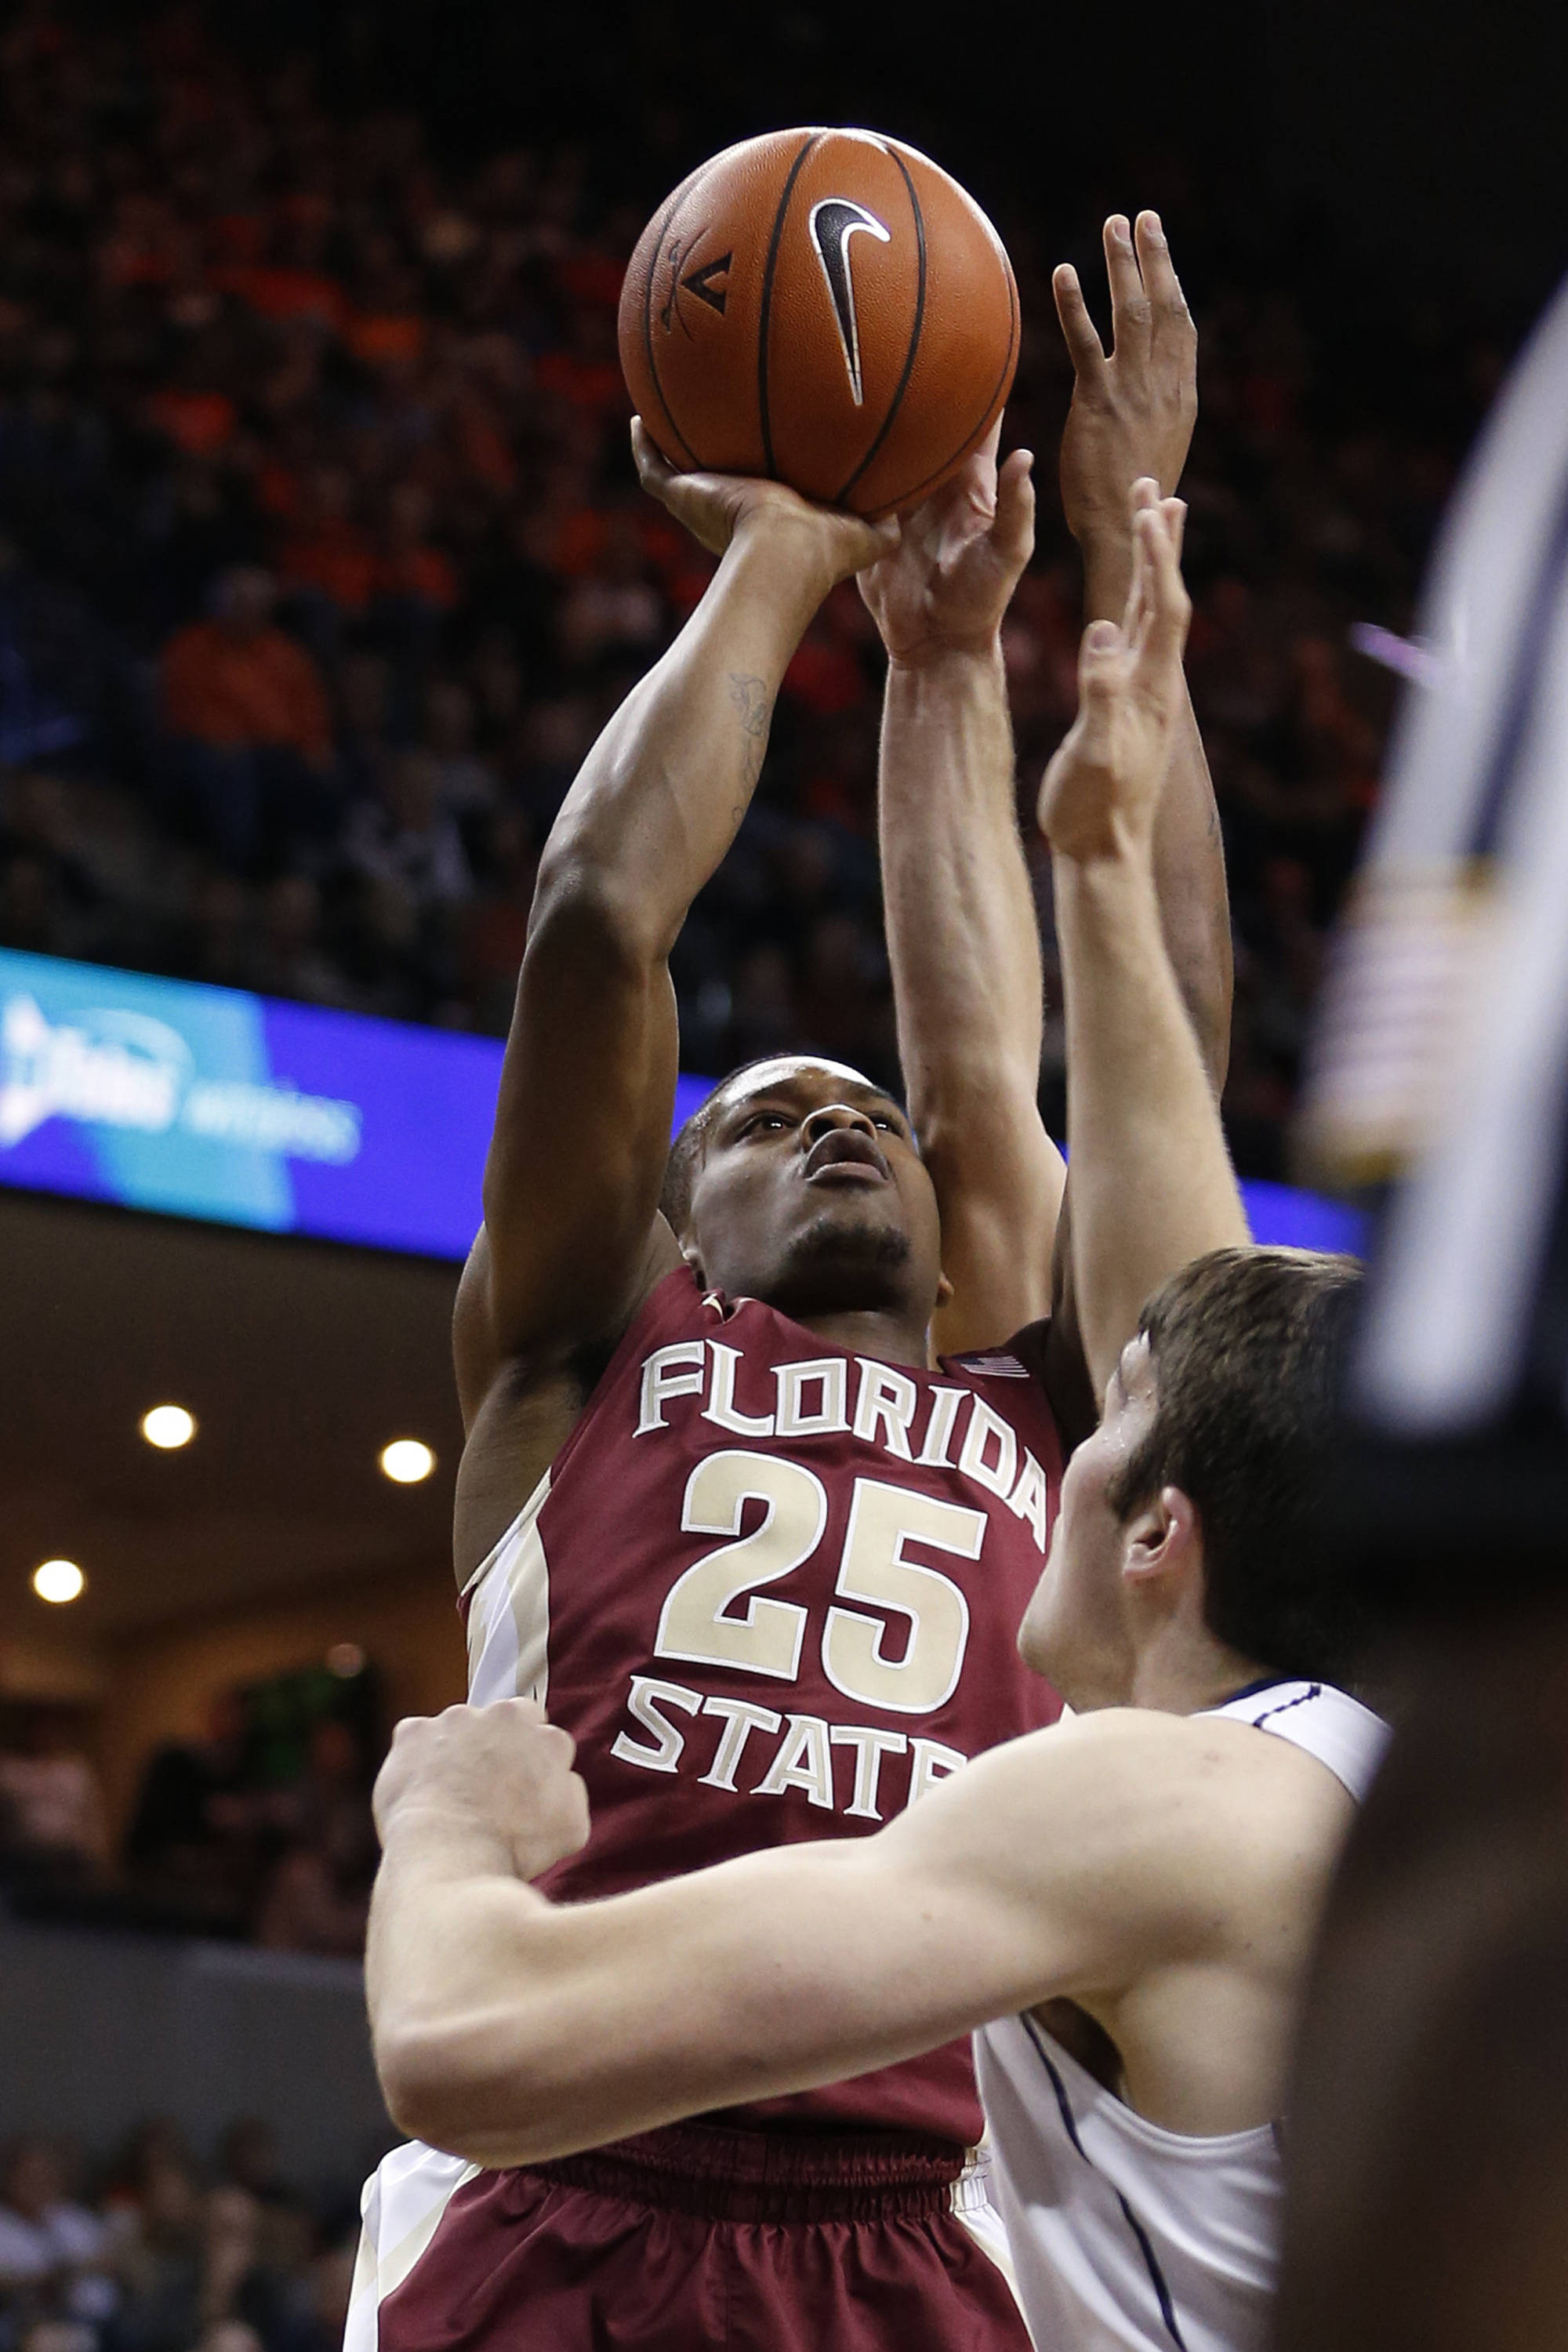 Jan 18, 2014; Charlottesville, VA, USA; Florida State Seminoles guard Aaron Thomas (25) shoots the ball as Virginia Cavaliers forward/center Mike Tobey (10) defends in the first half at John Paul Jones Arena. Mandatory Credit: Geoff Burke-USA TODAY Sports